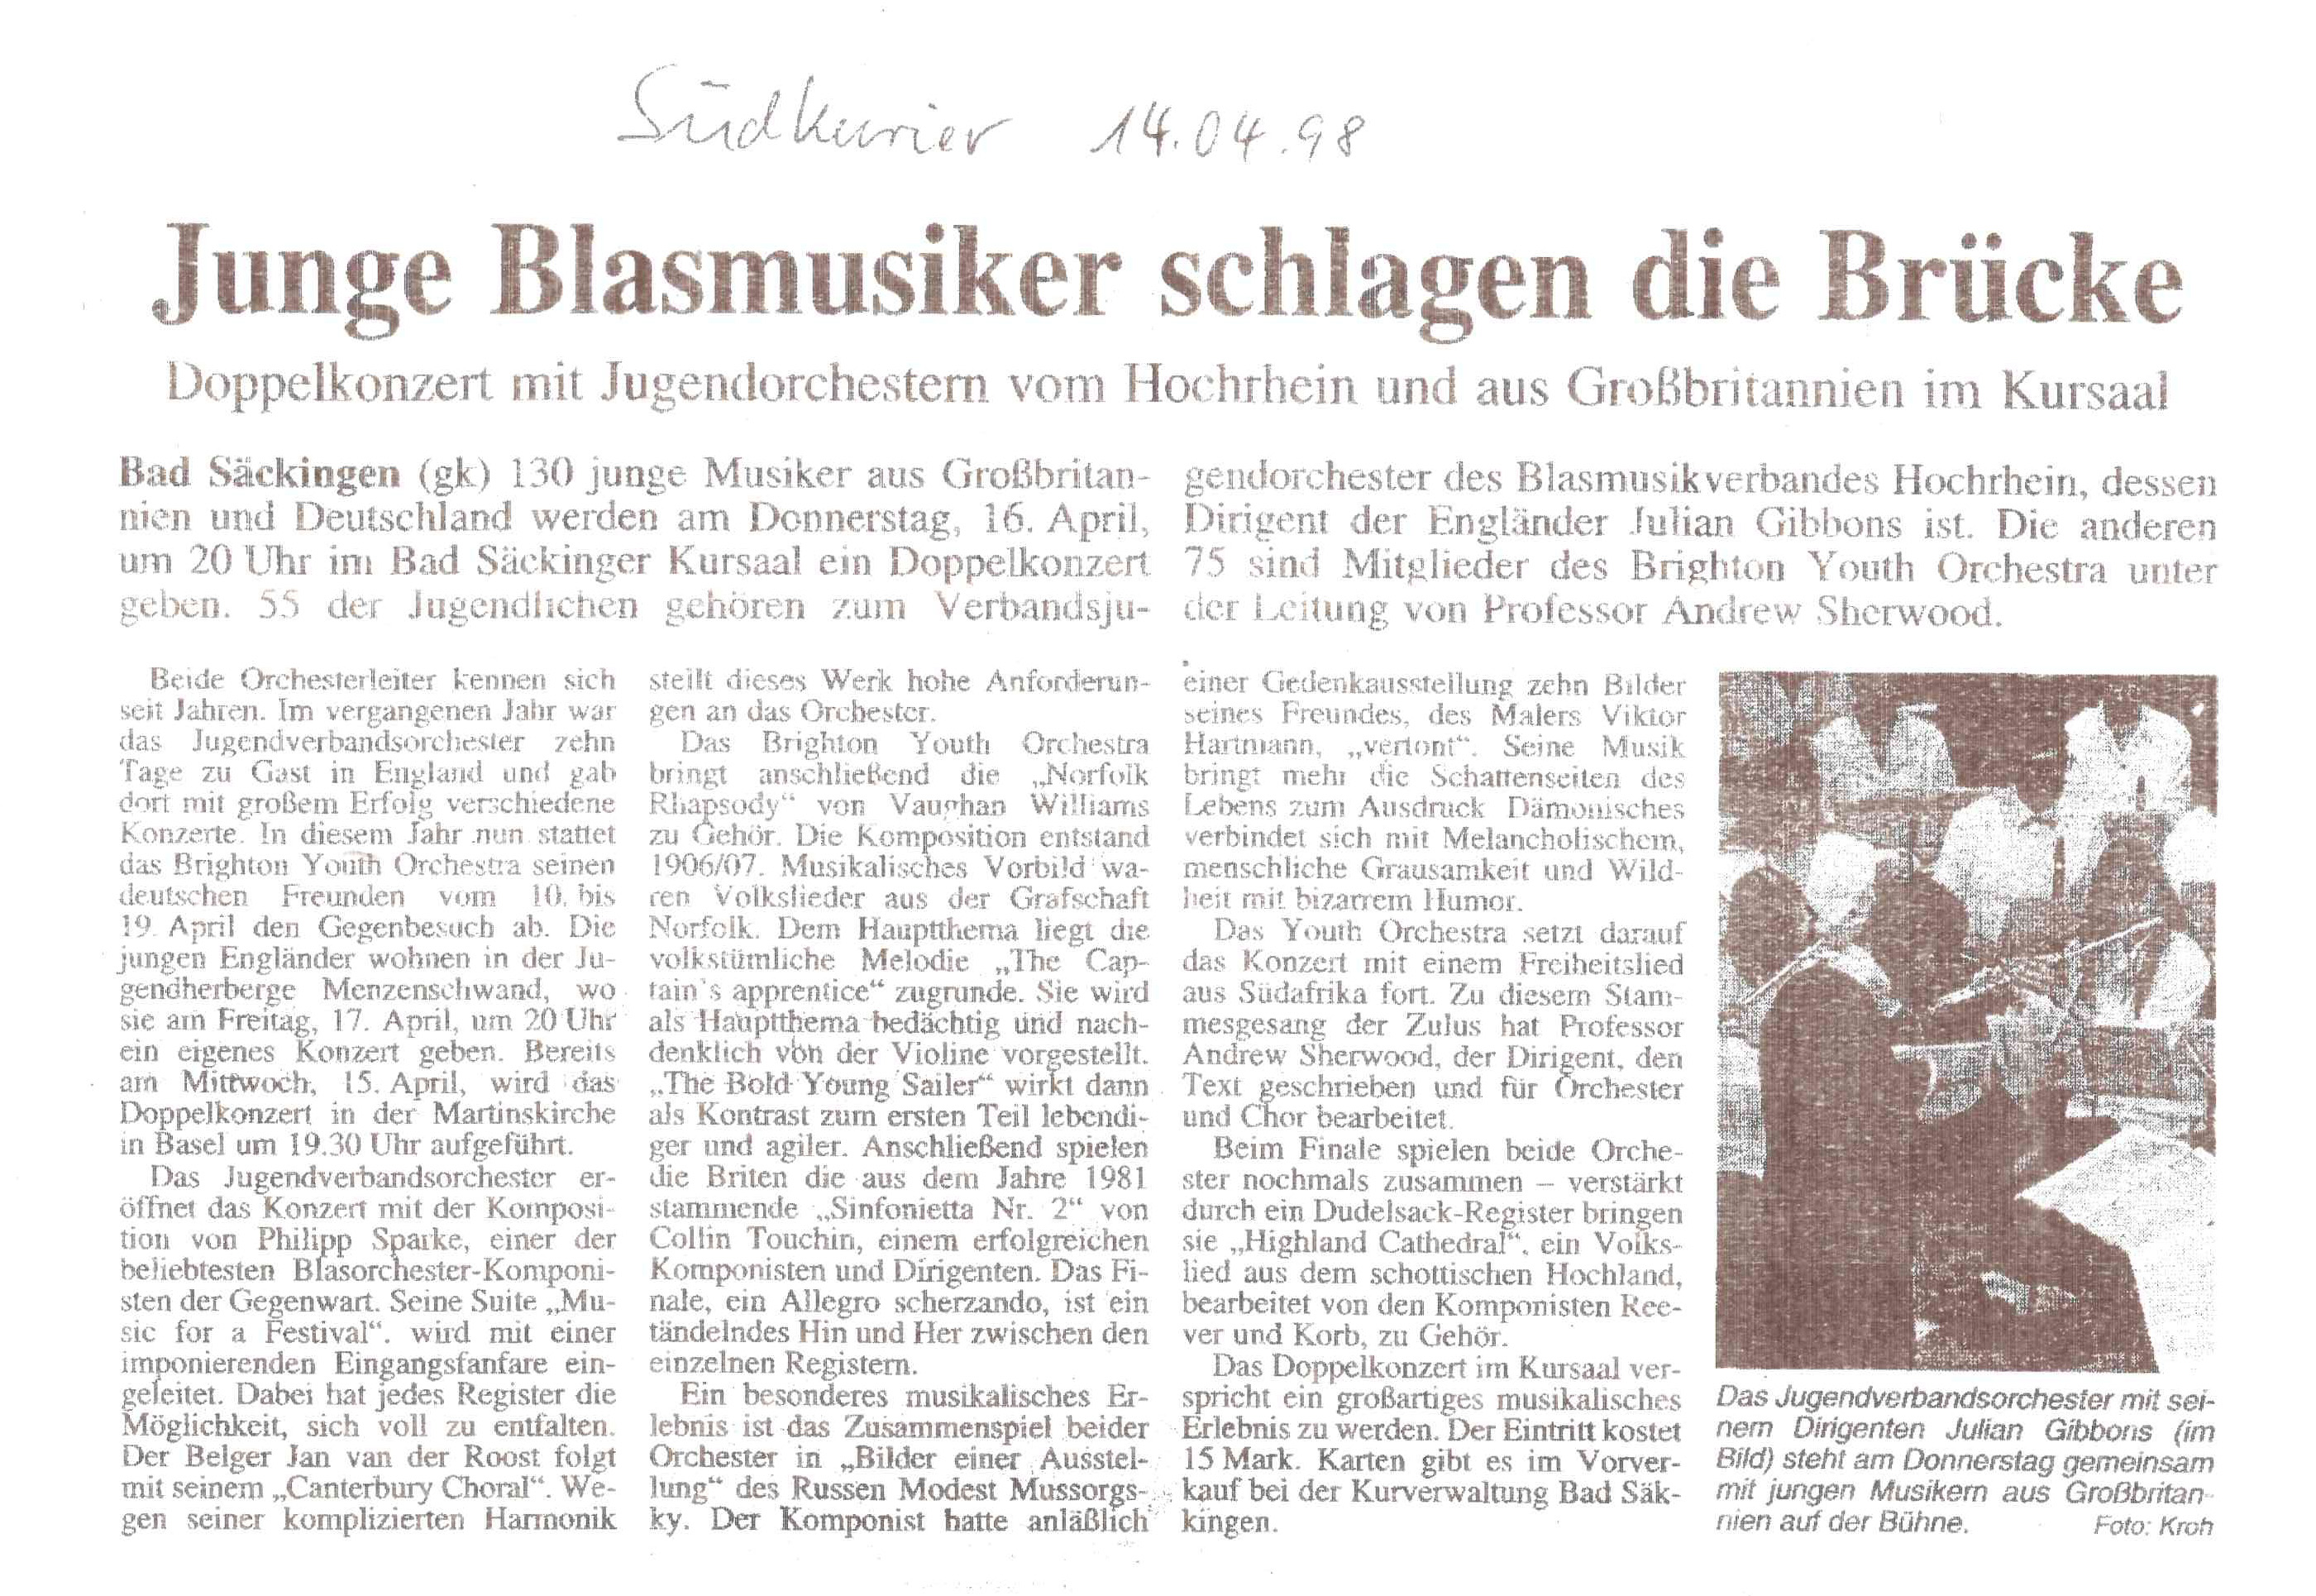 00310-Snidkurier, 14th April 1998.jpg